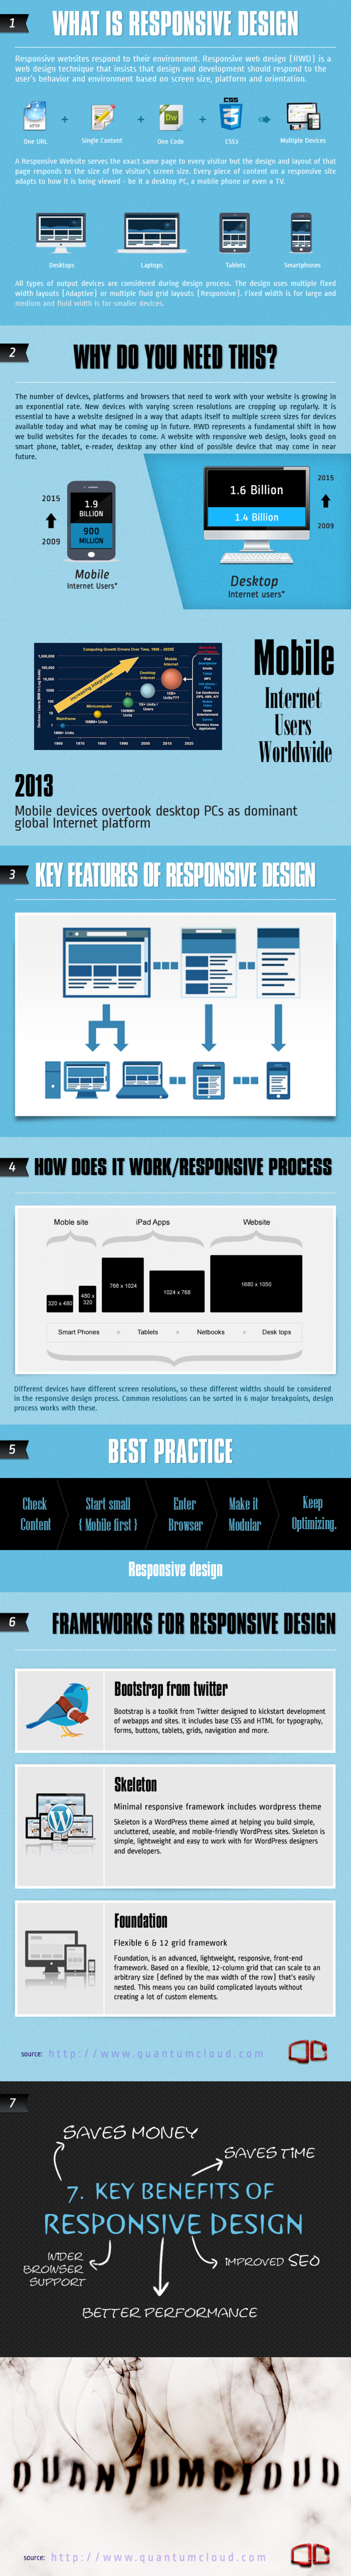 Responsive Web Design - What it is and why should I care? Infographic